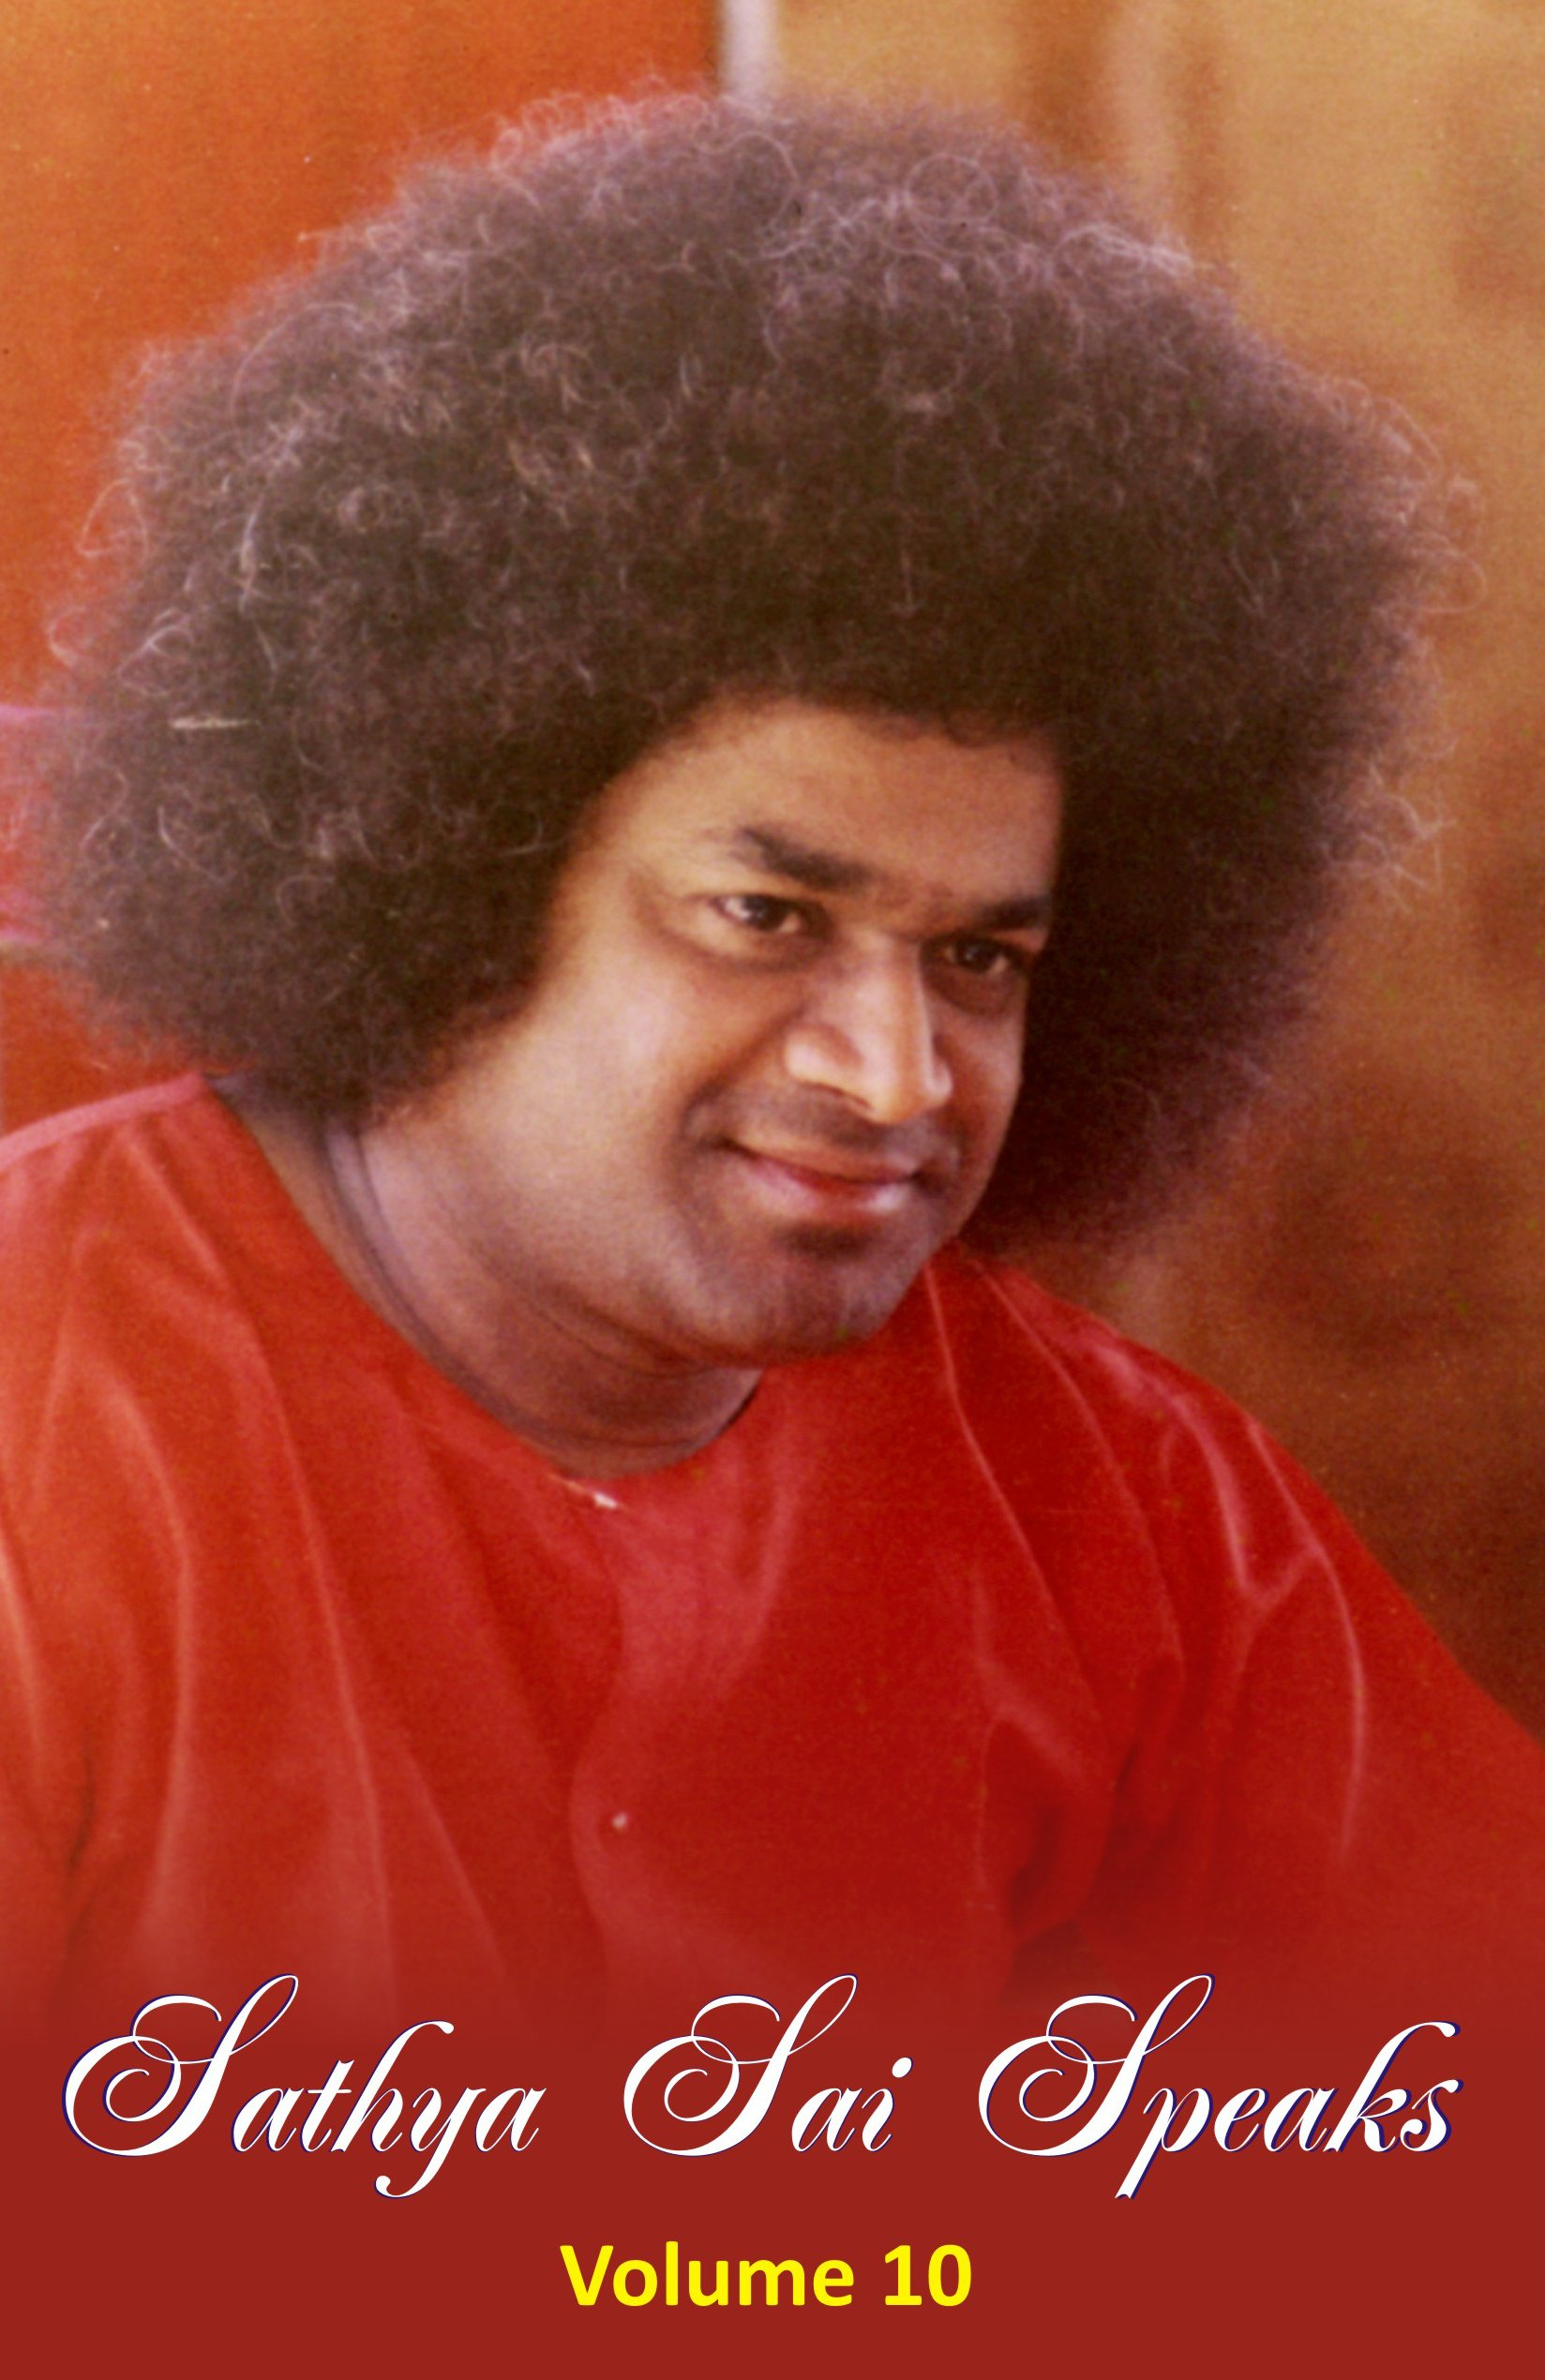 Sathya Sai Speaks Vol 10 Publications Division Sssst Bhagawan